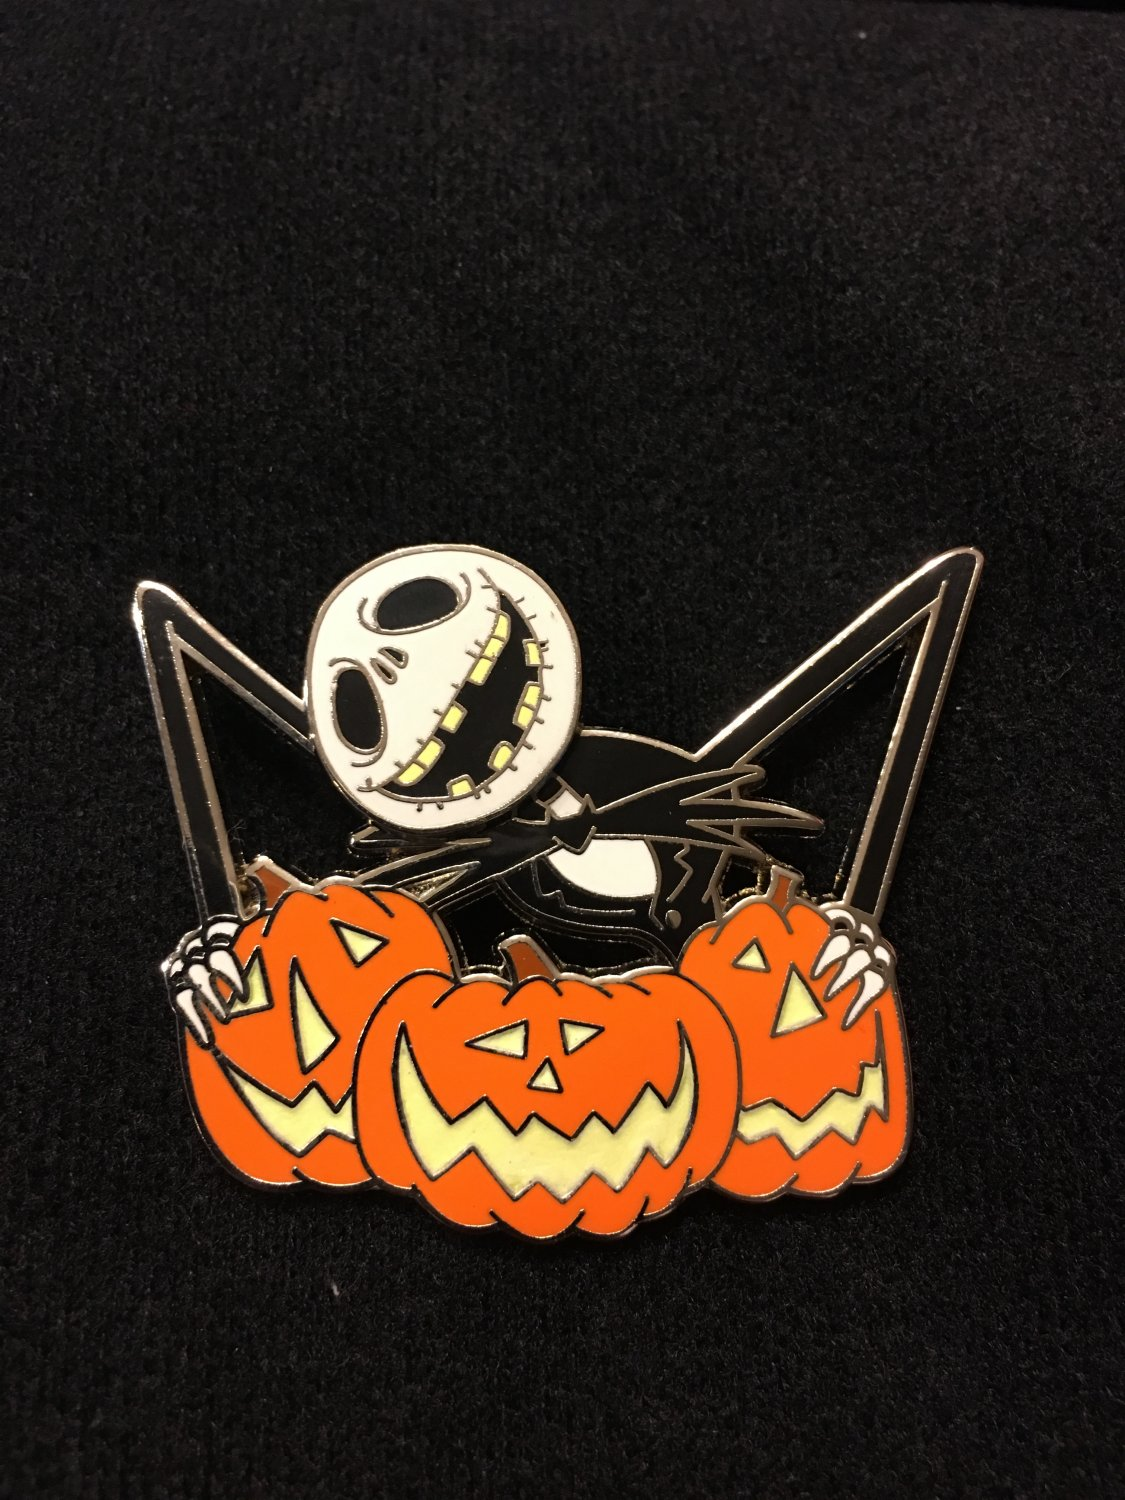 DLR - Nightmare Before Christmas - Jack Skellington with Pumpkins (Surprise Release)